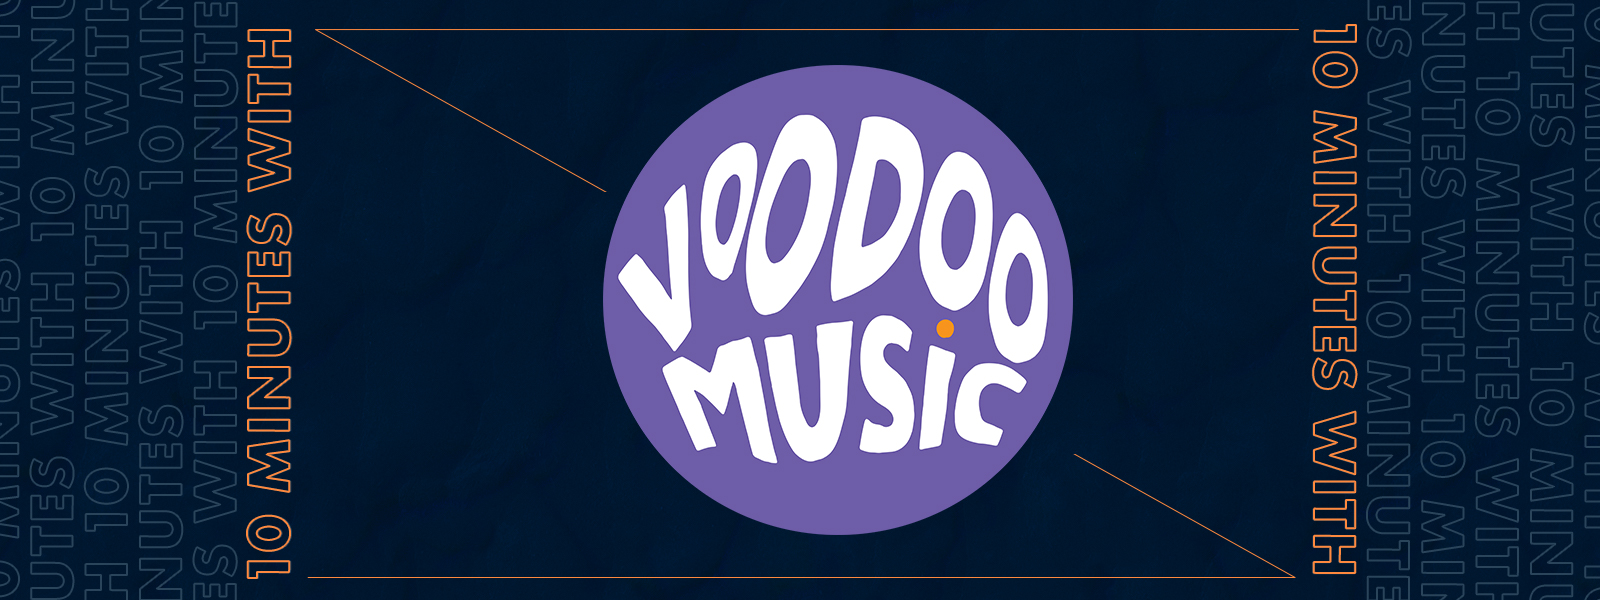 Meet Voodoo Music, The Barcelona Record Label Dedicated To Empowering Afro-Spanish Artists.